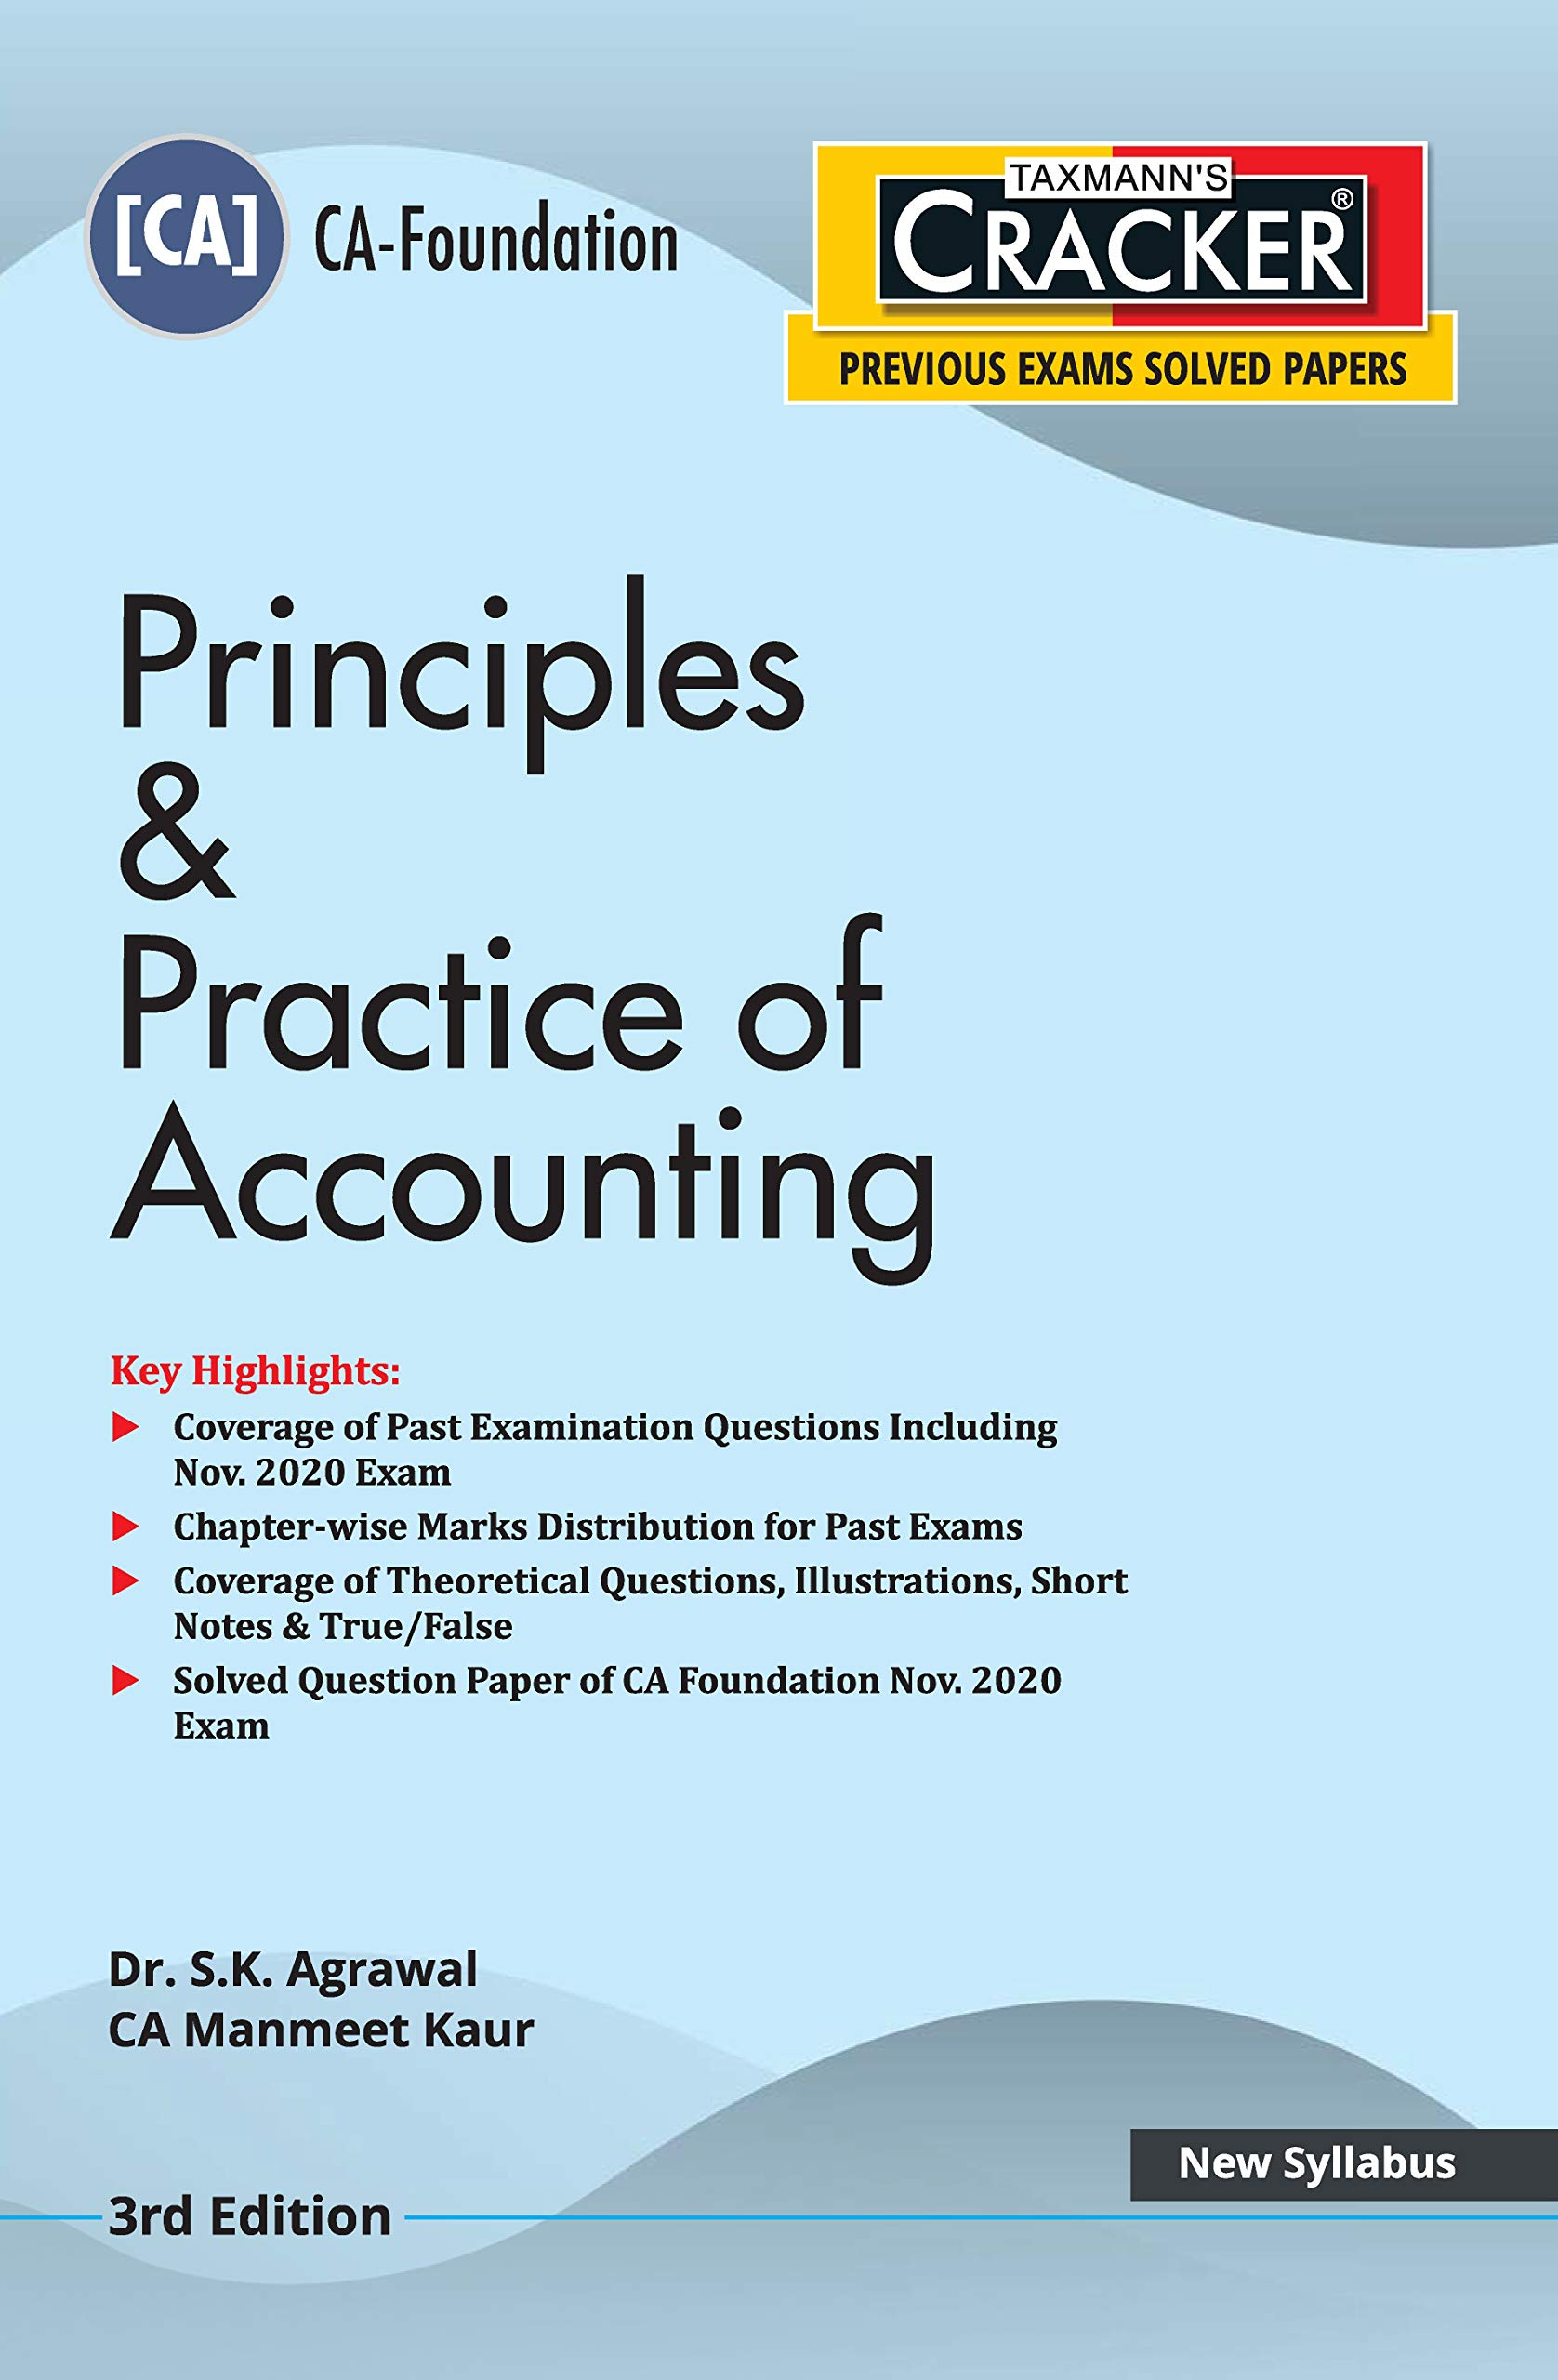 Taxmann's CRACKER – Principles & Practice of Accounting | CA-Foundation – New Syllabus | Updated till 31-10-2020 | 3rd Edition | 2021